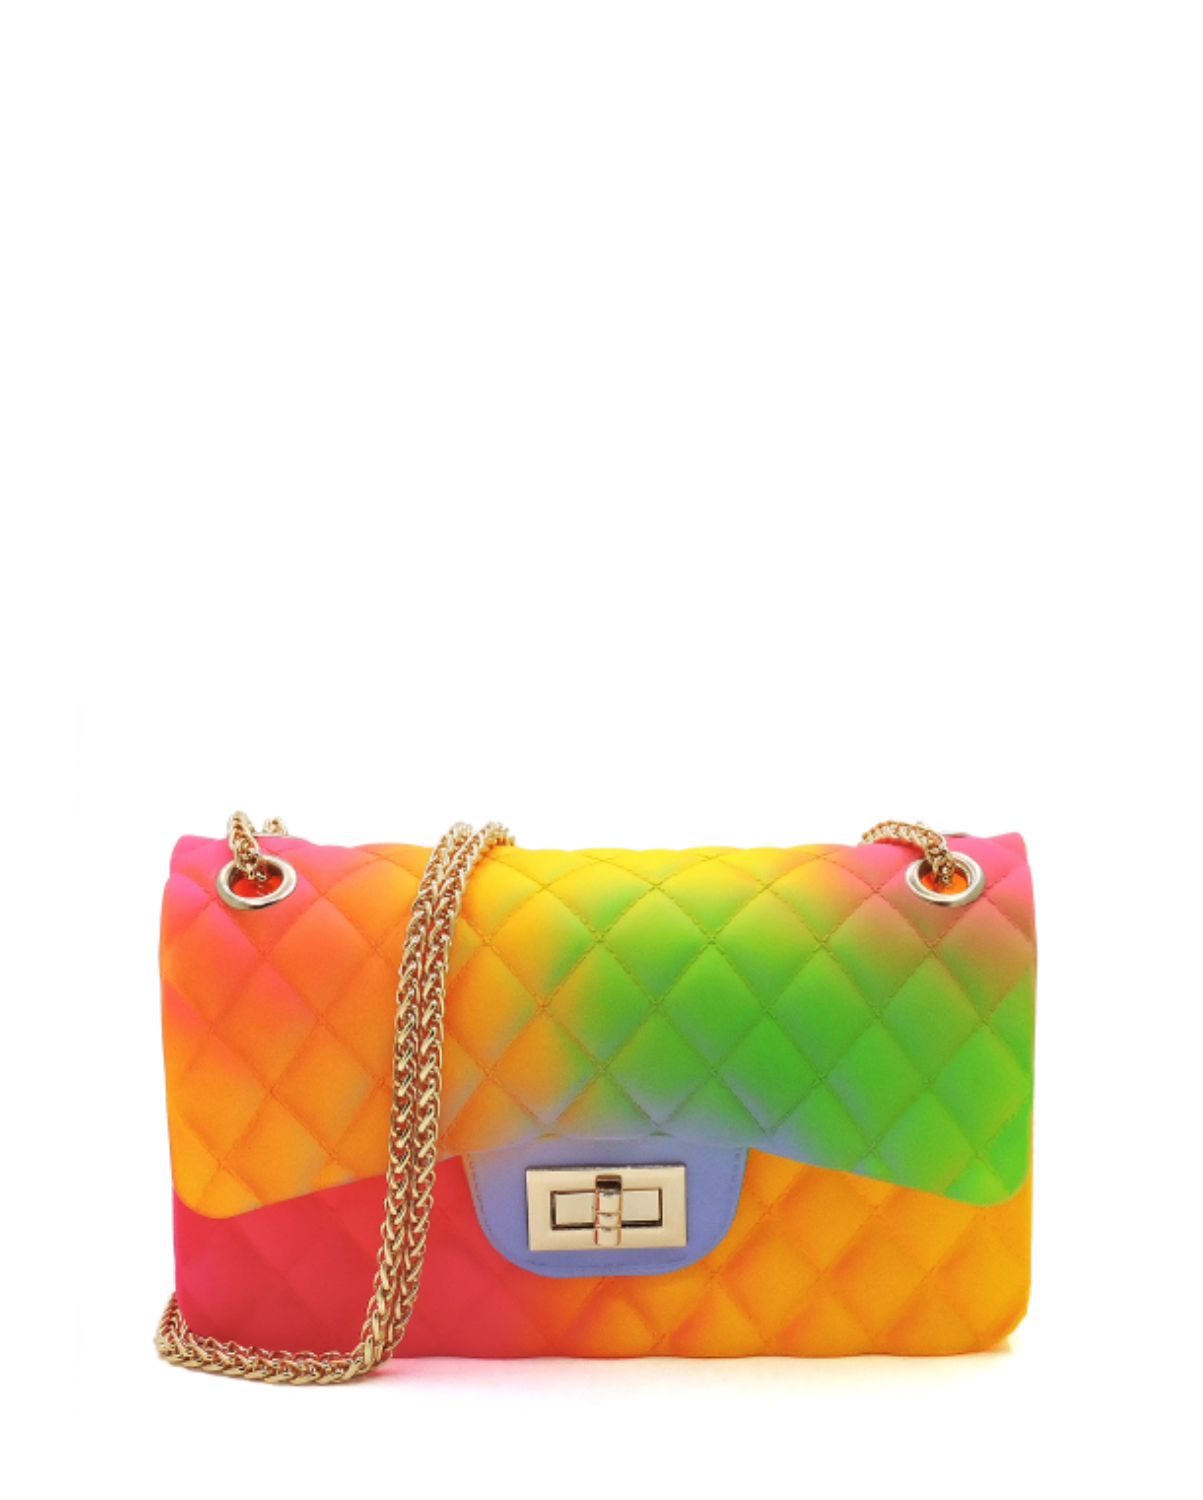 JM9030L(MTA)-wholesale-messenger-bag-jelly-silicorn-solid-color-flap-chevron-gold-chain-convertible-embossed(0).jpg